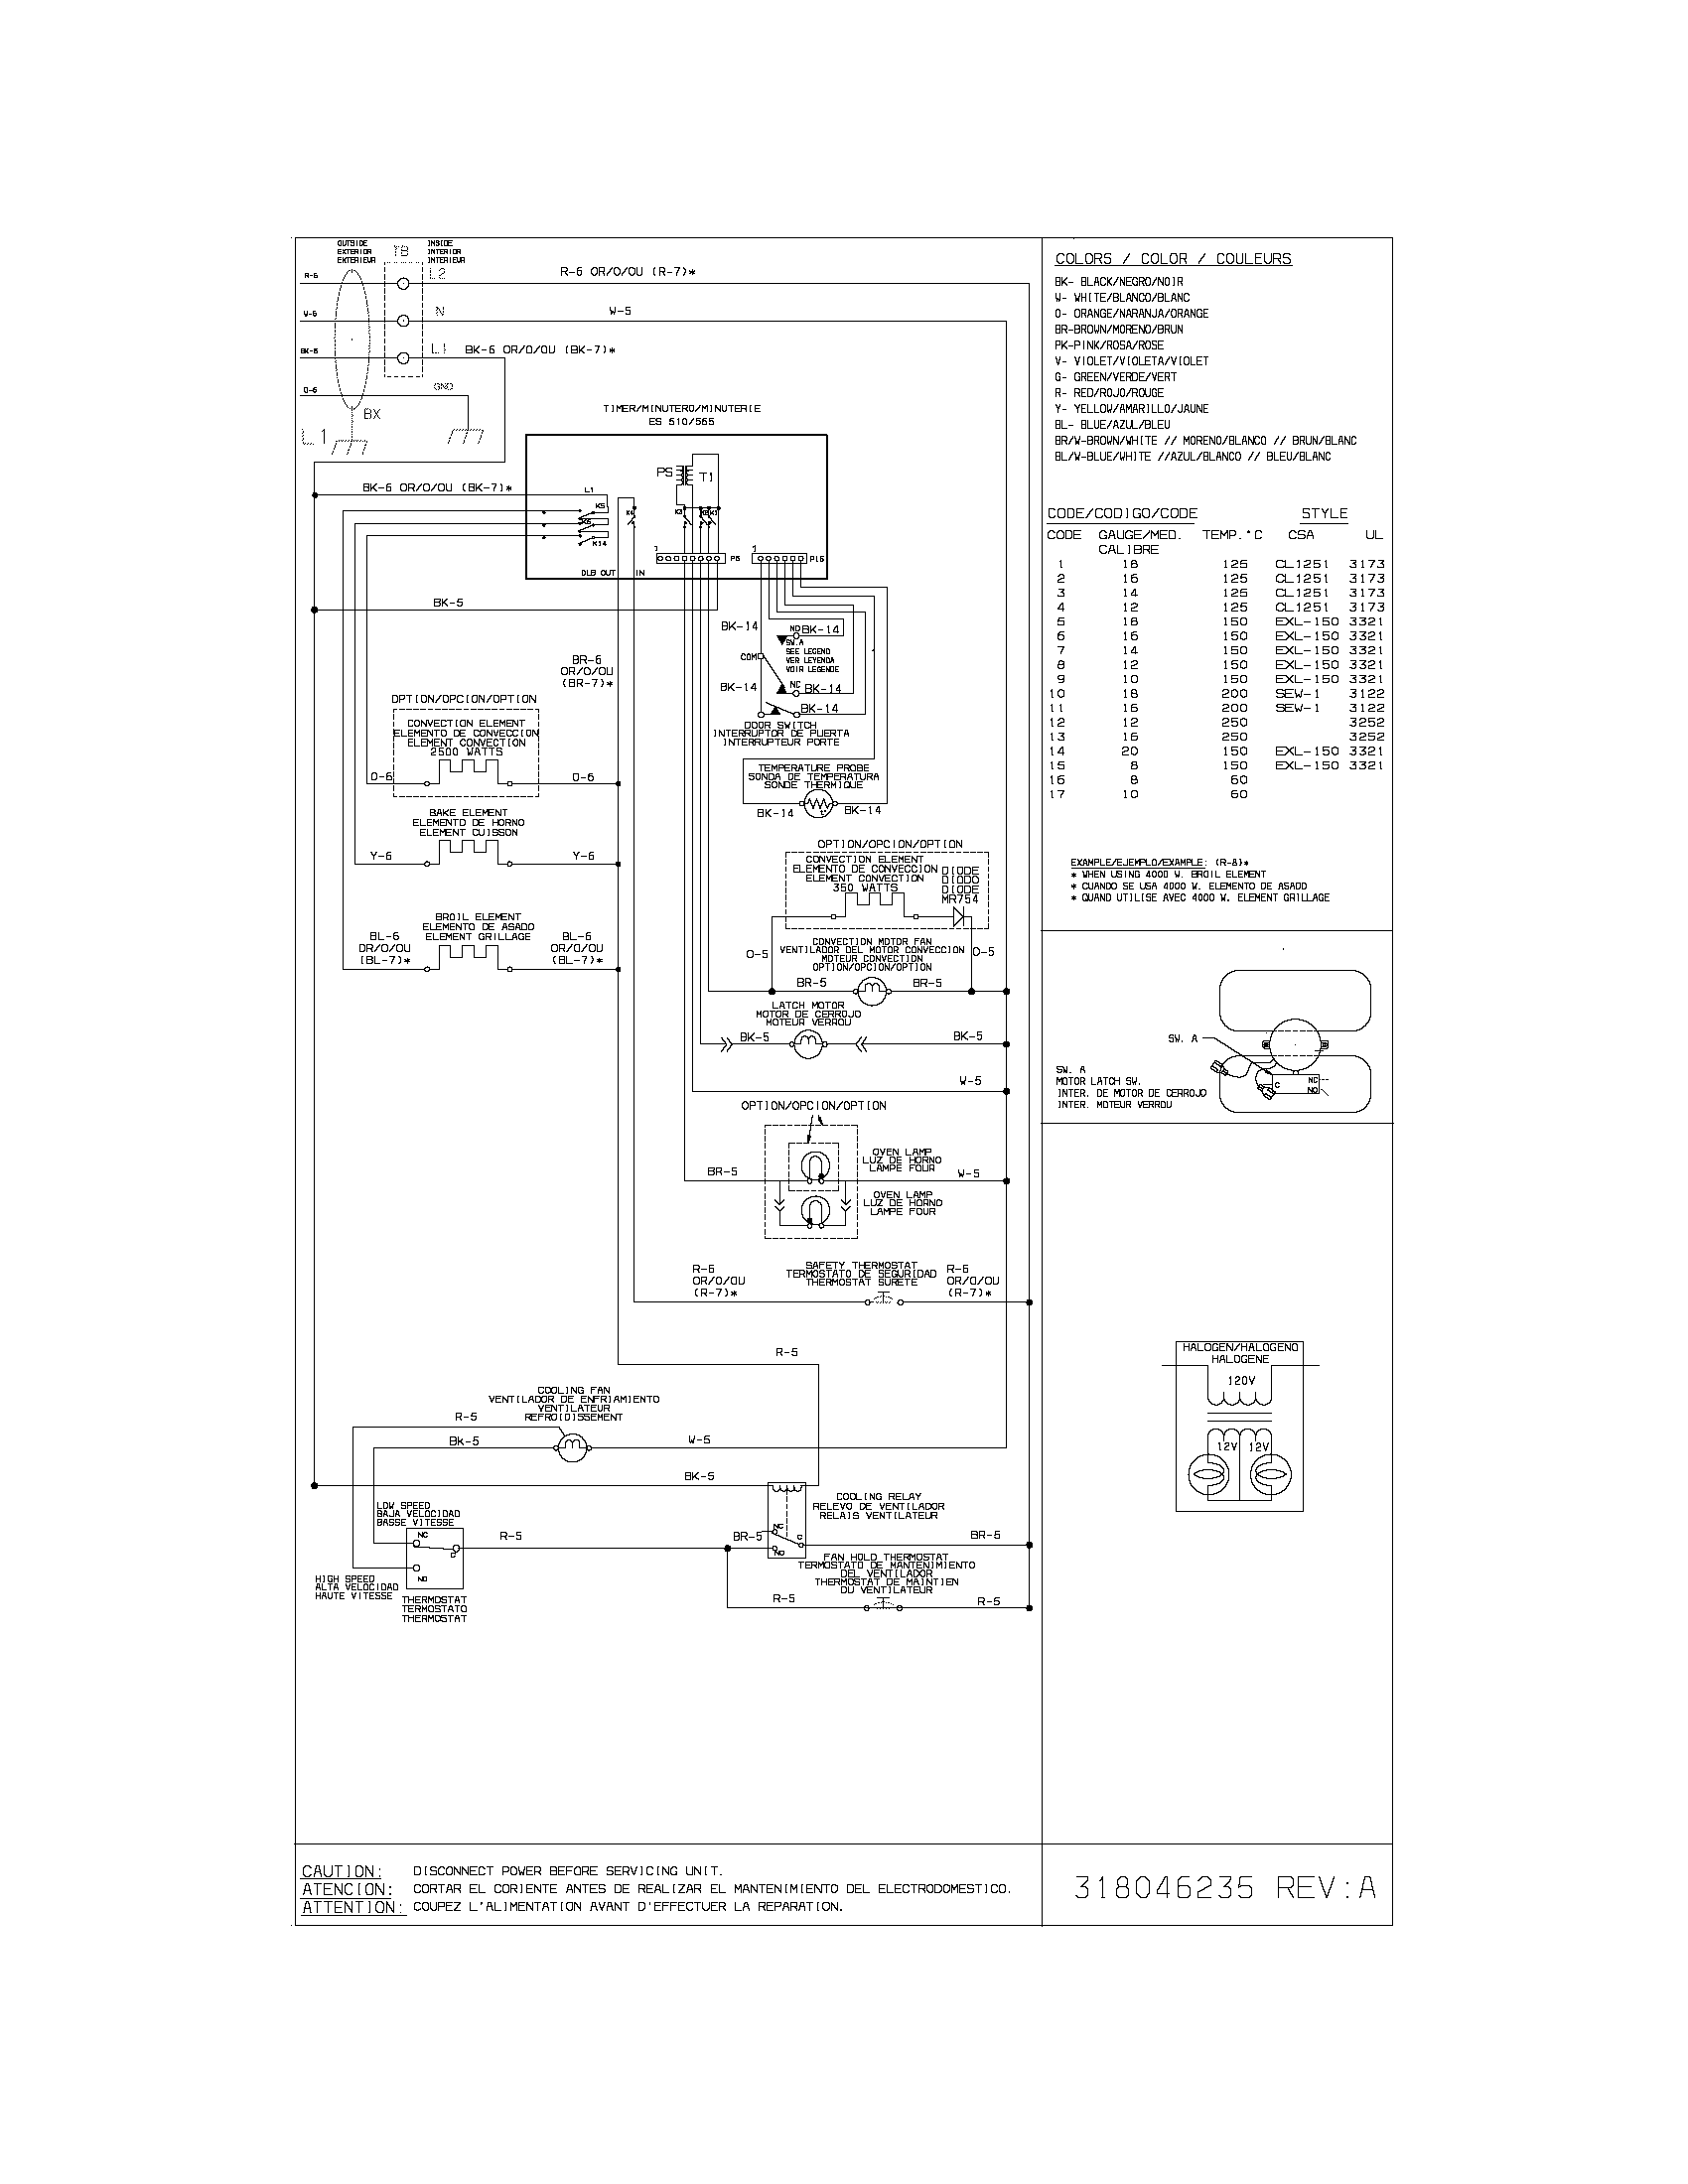 wiring diagram for frigidaire stove schematic diagram databasewiring diagram for frigidaire wall oven wiring diagrams wiring [ 1700 x 2200 Pixel ]